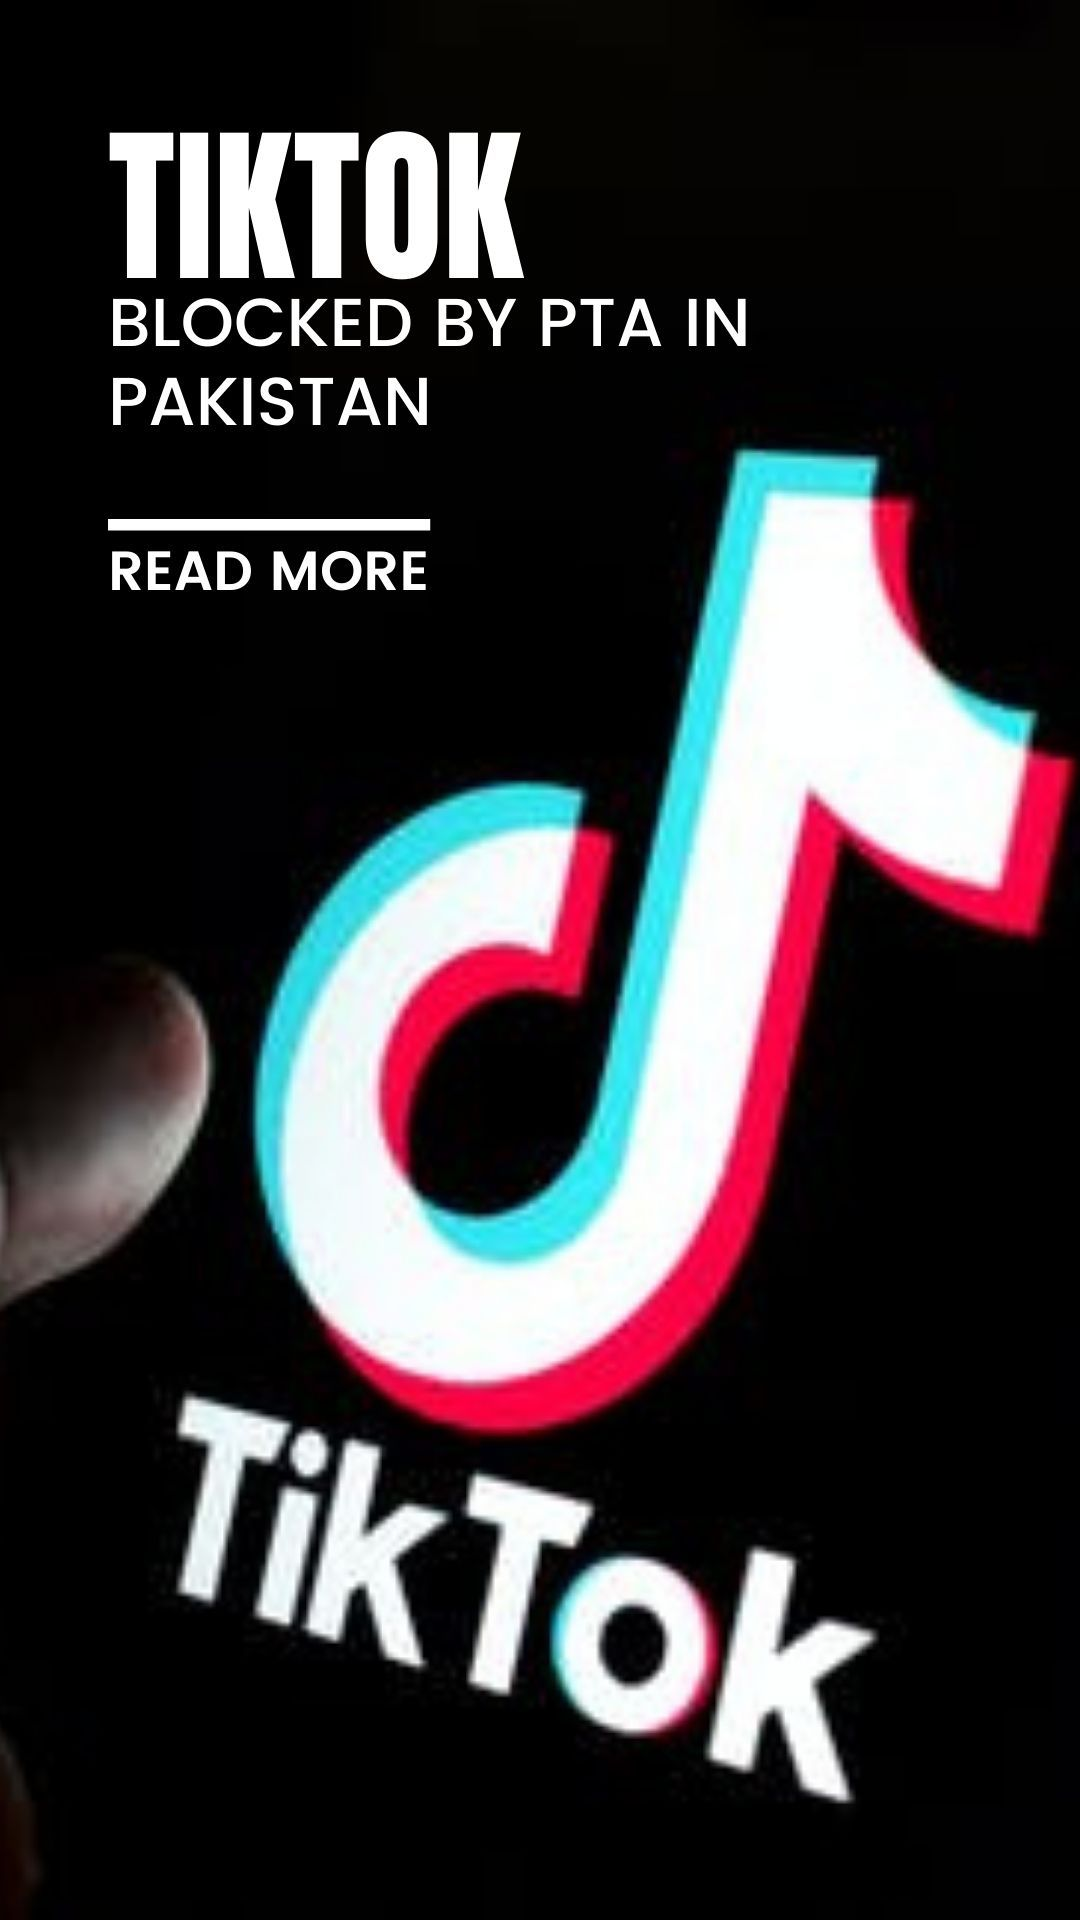 Tiktok Banned In Pakistan By Pta For Immoral And Indecent Content Pta Pakistan Segmentation